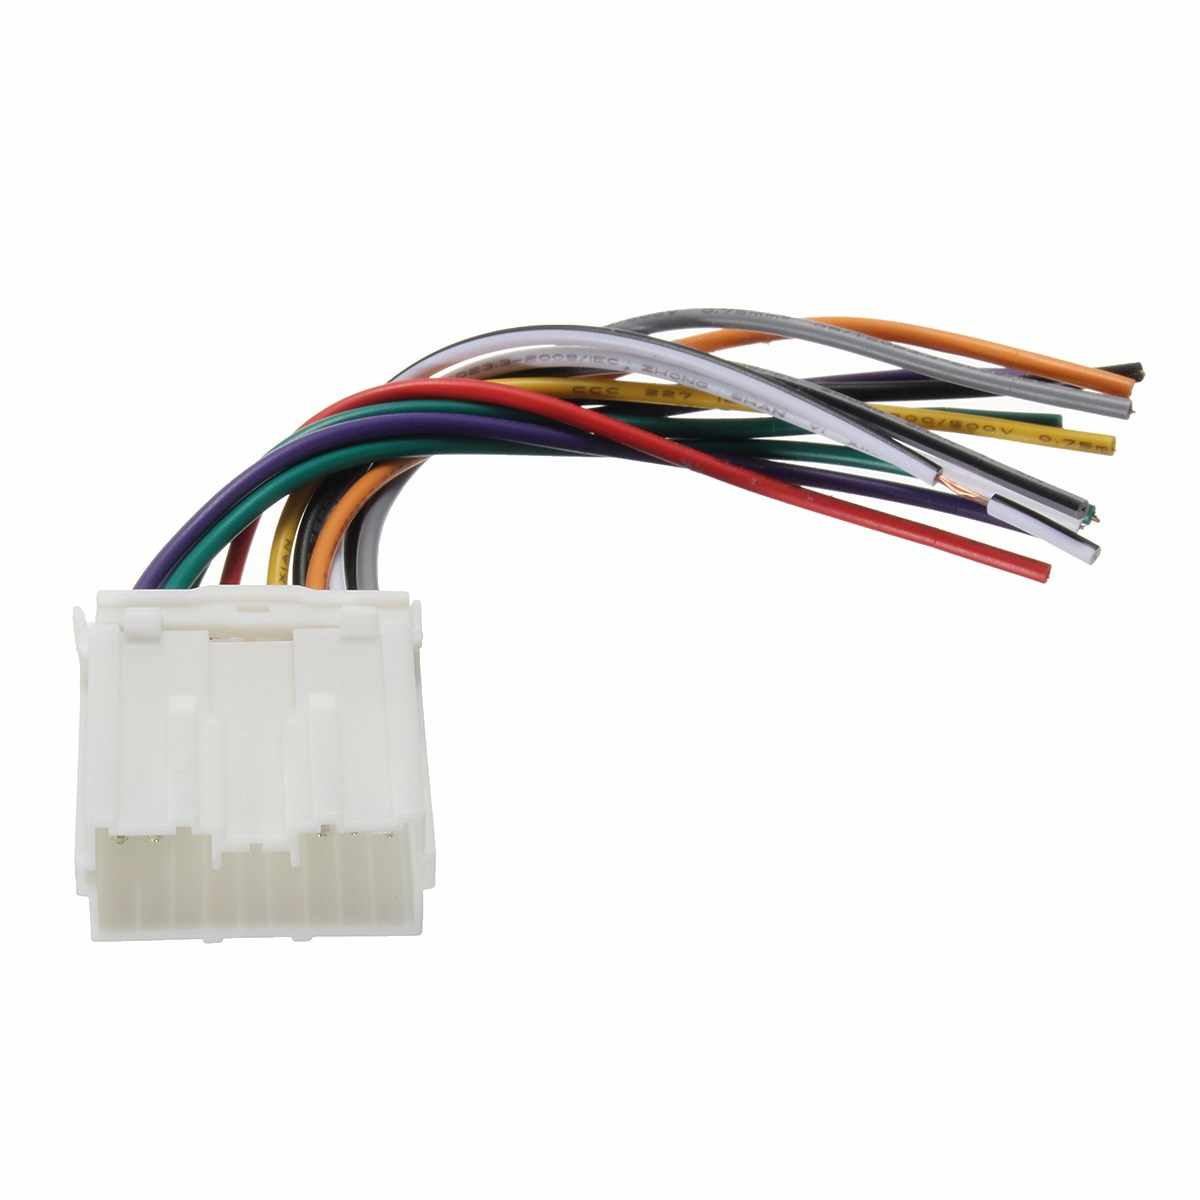 kroak car stereo radio cd player wiring harness wire aftermarket for mitsubishi dwh612 [ 1200 x 1200 Pixel ]